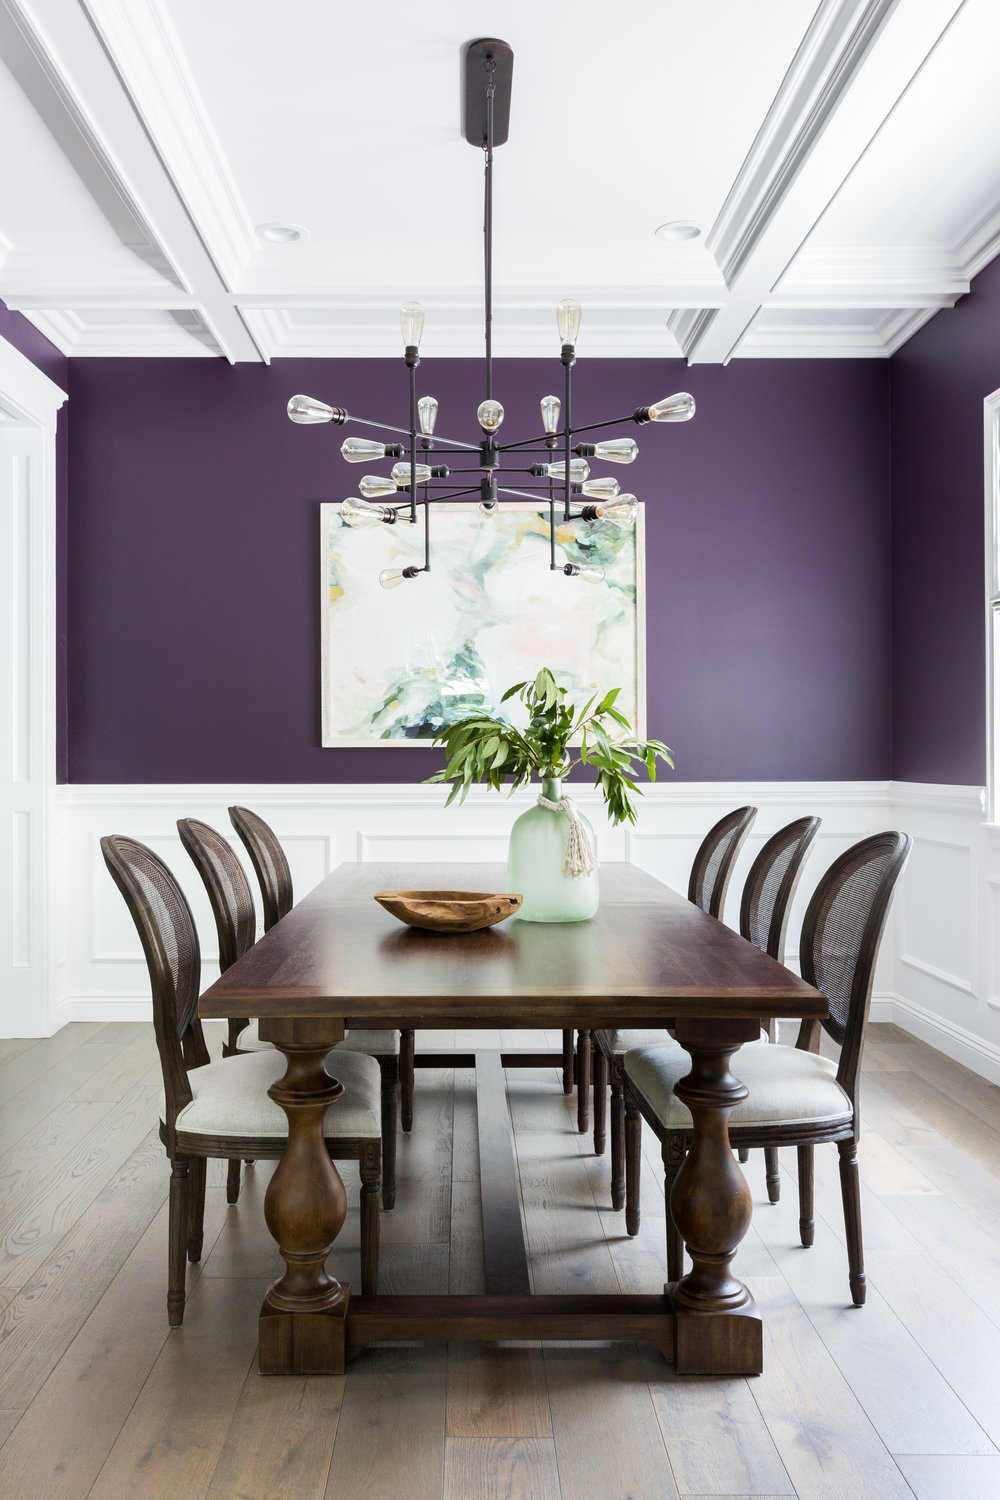 Bright, bold traditional dining room design by Lindsey Brooke Design.jpg